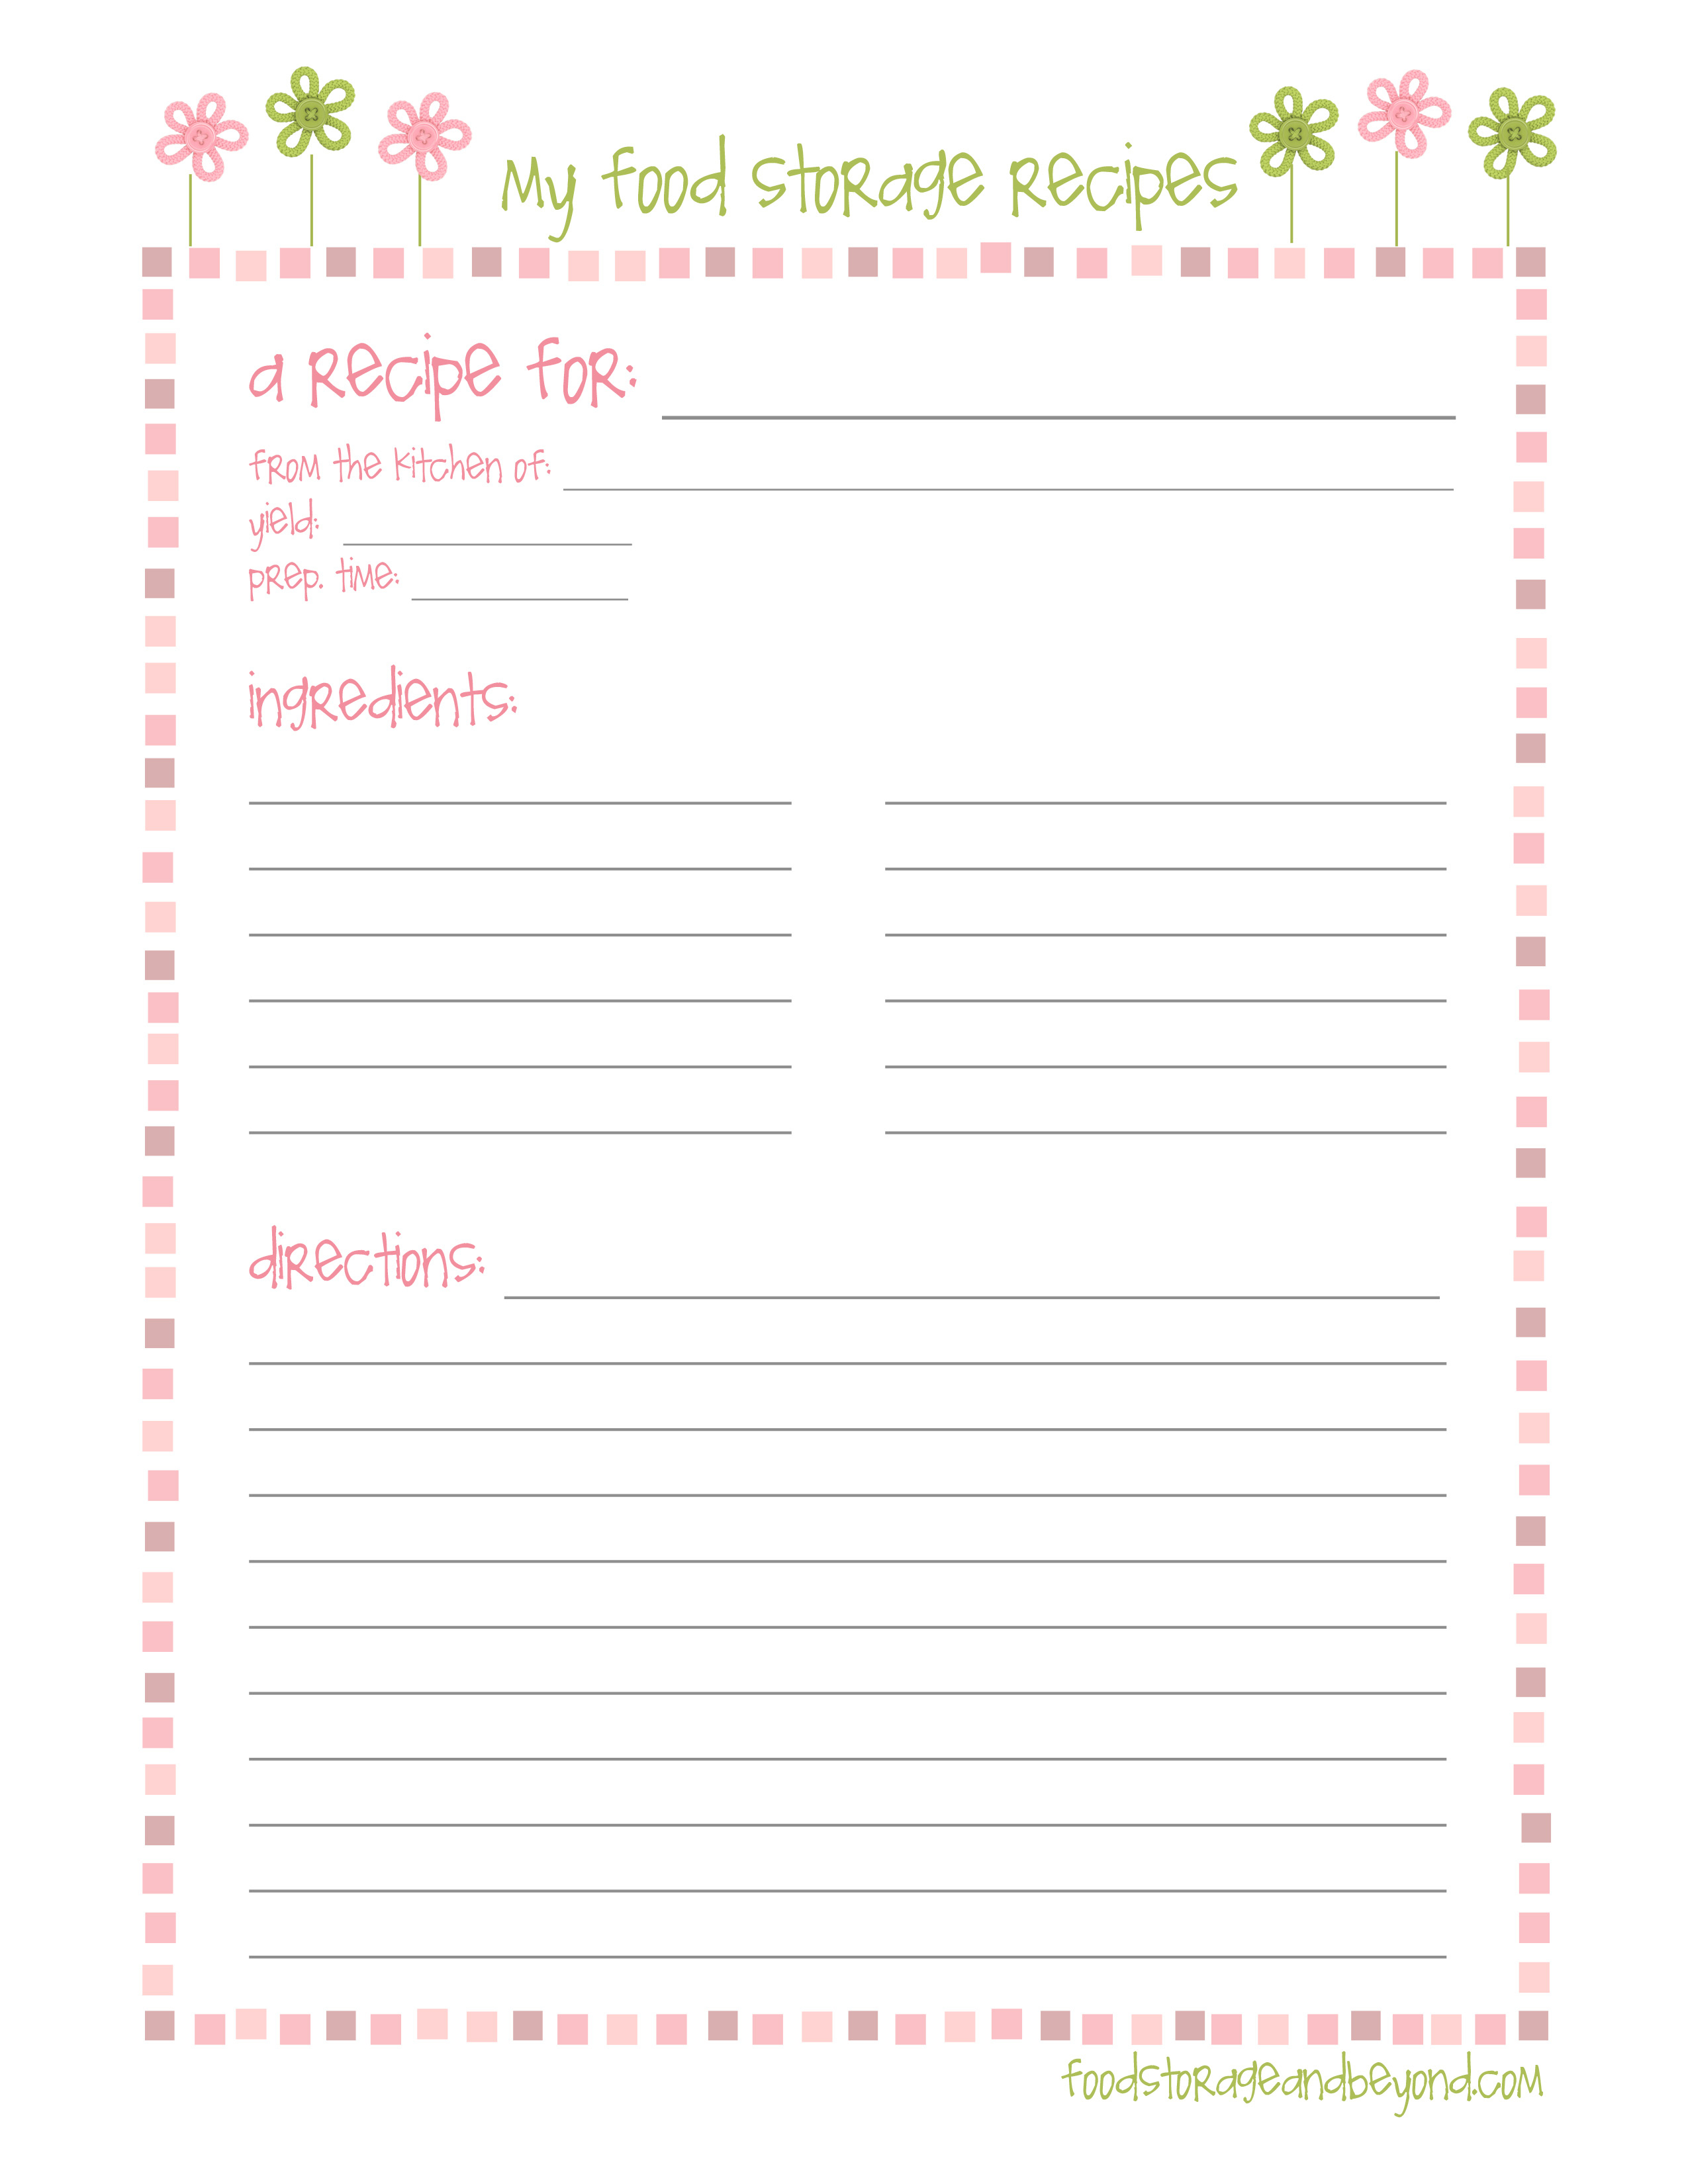 Pinjill Ortago On Happy Planning! | Printable Recipe Page - Free Printable Recipe Pages